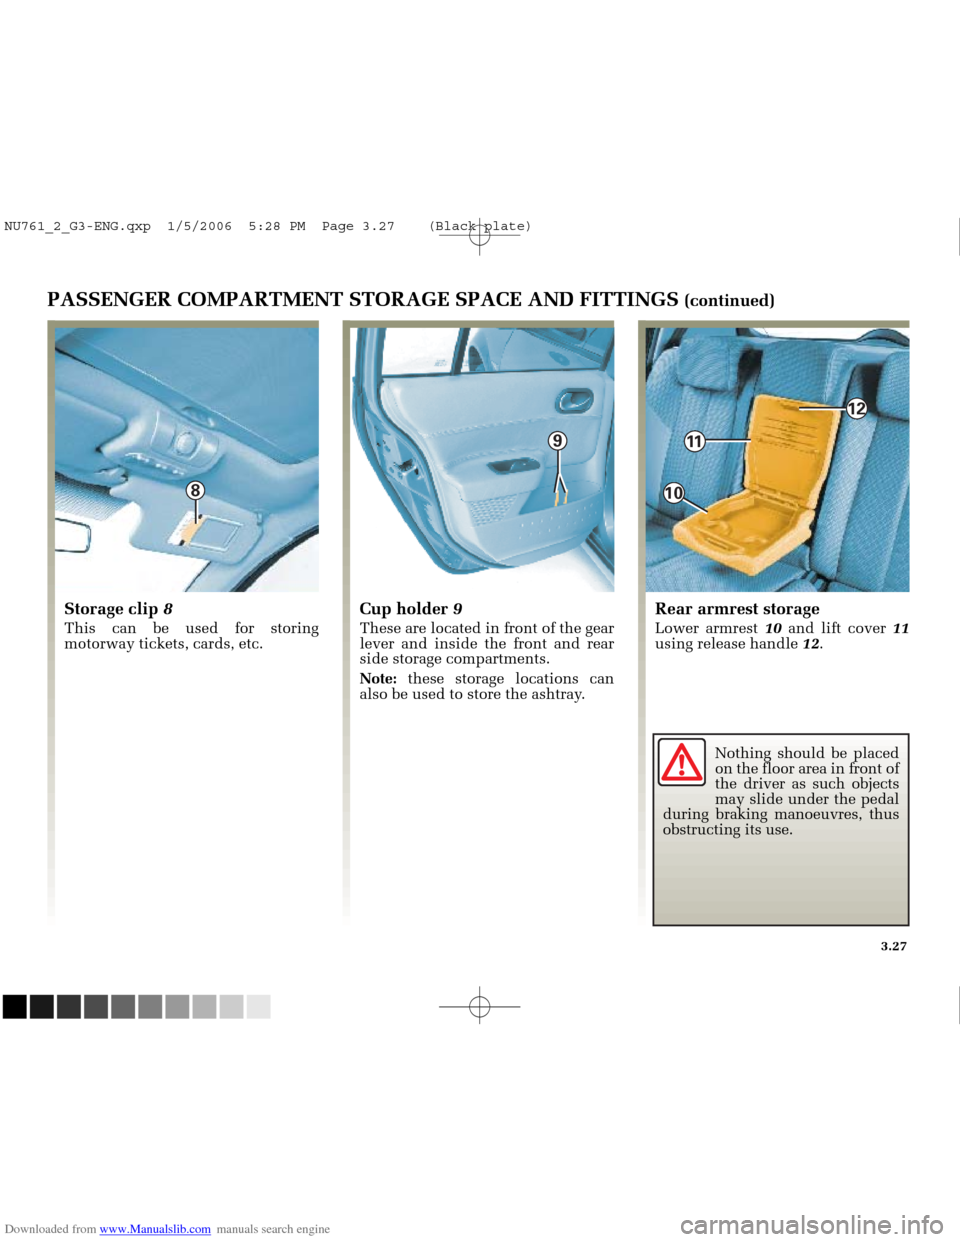 RENAULT MEGANE 2005 X84 / 2.G Owners Manual Downloaded from www.Manualslib.com manuals search engine  9  8 10  11  12  NU761_2_G3-FRA.qxd  4/11/05  10:52  Page 3.27 3.27 PASSENGER COMPARTMENT STORAGE SPACE AND FITTINGS (continued) Storage clip